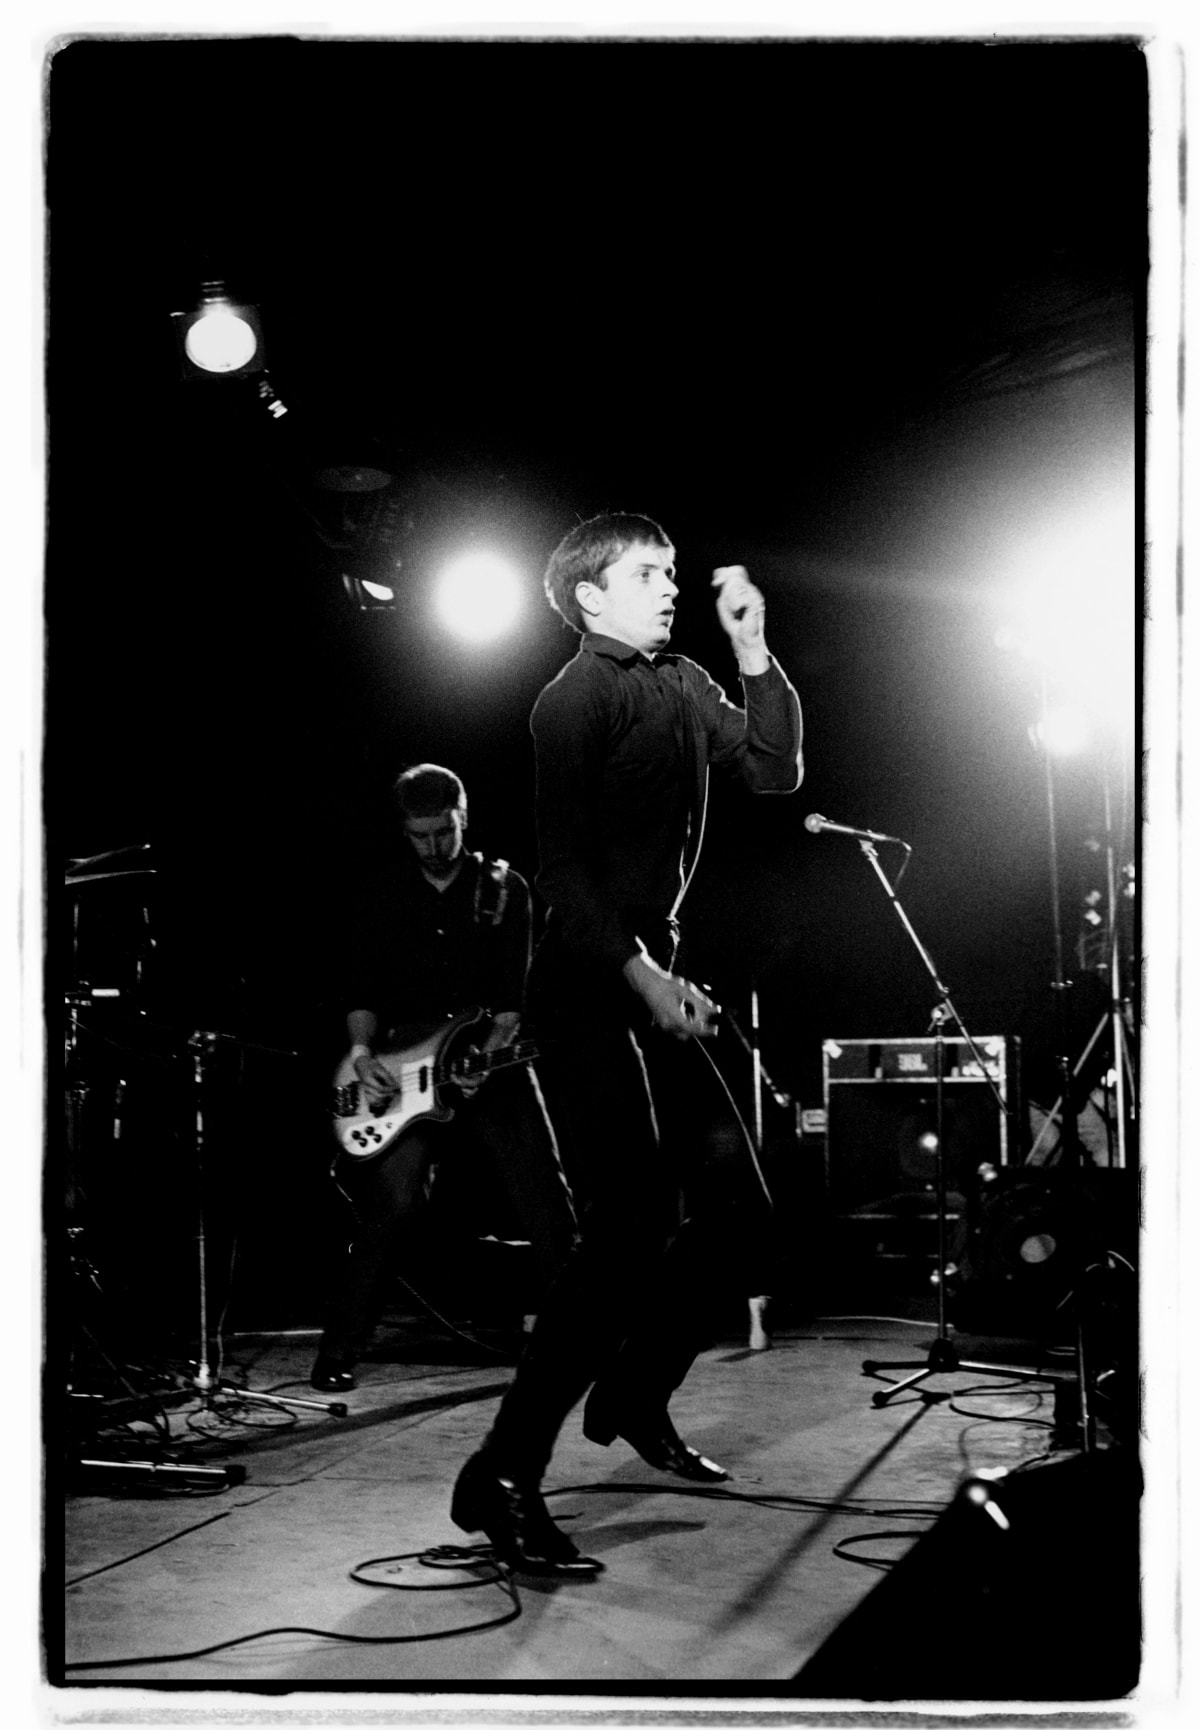 Kevin Cummins 9.Peter Hook and Ian Curtis, Joy Division. Fac 15: Zoo meets Factory Half Way. Leigh Festival, Lancashire 27 August 1979, 2006 Gelatin-silver print. Edition of 75 40.6 x 50.8 cm 16 x 20 in Edition of 75